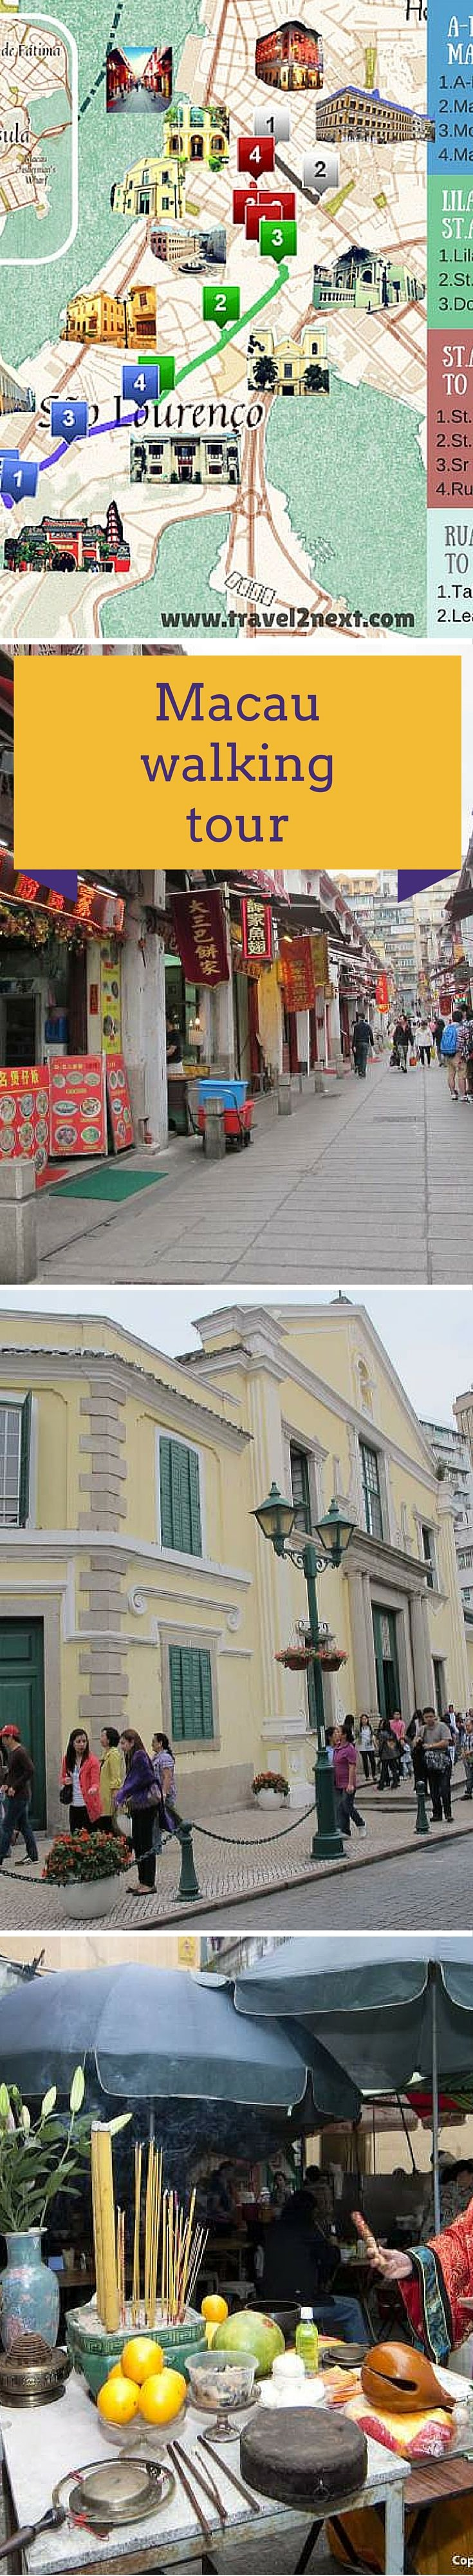 Explore Macau's Penha Peninsula with this handy map and walking tour suggestions.